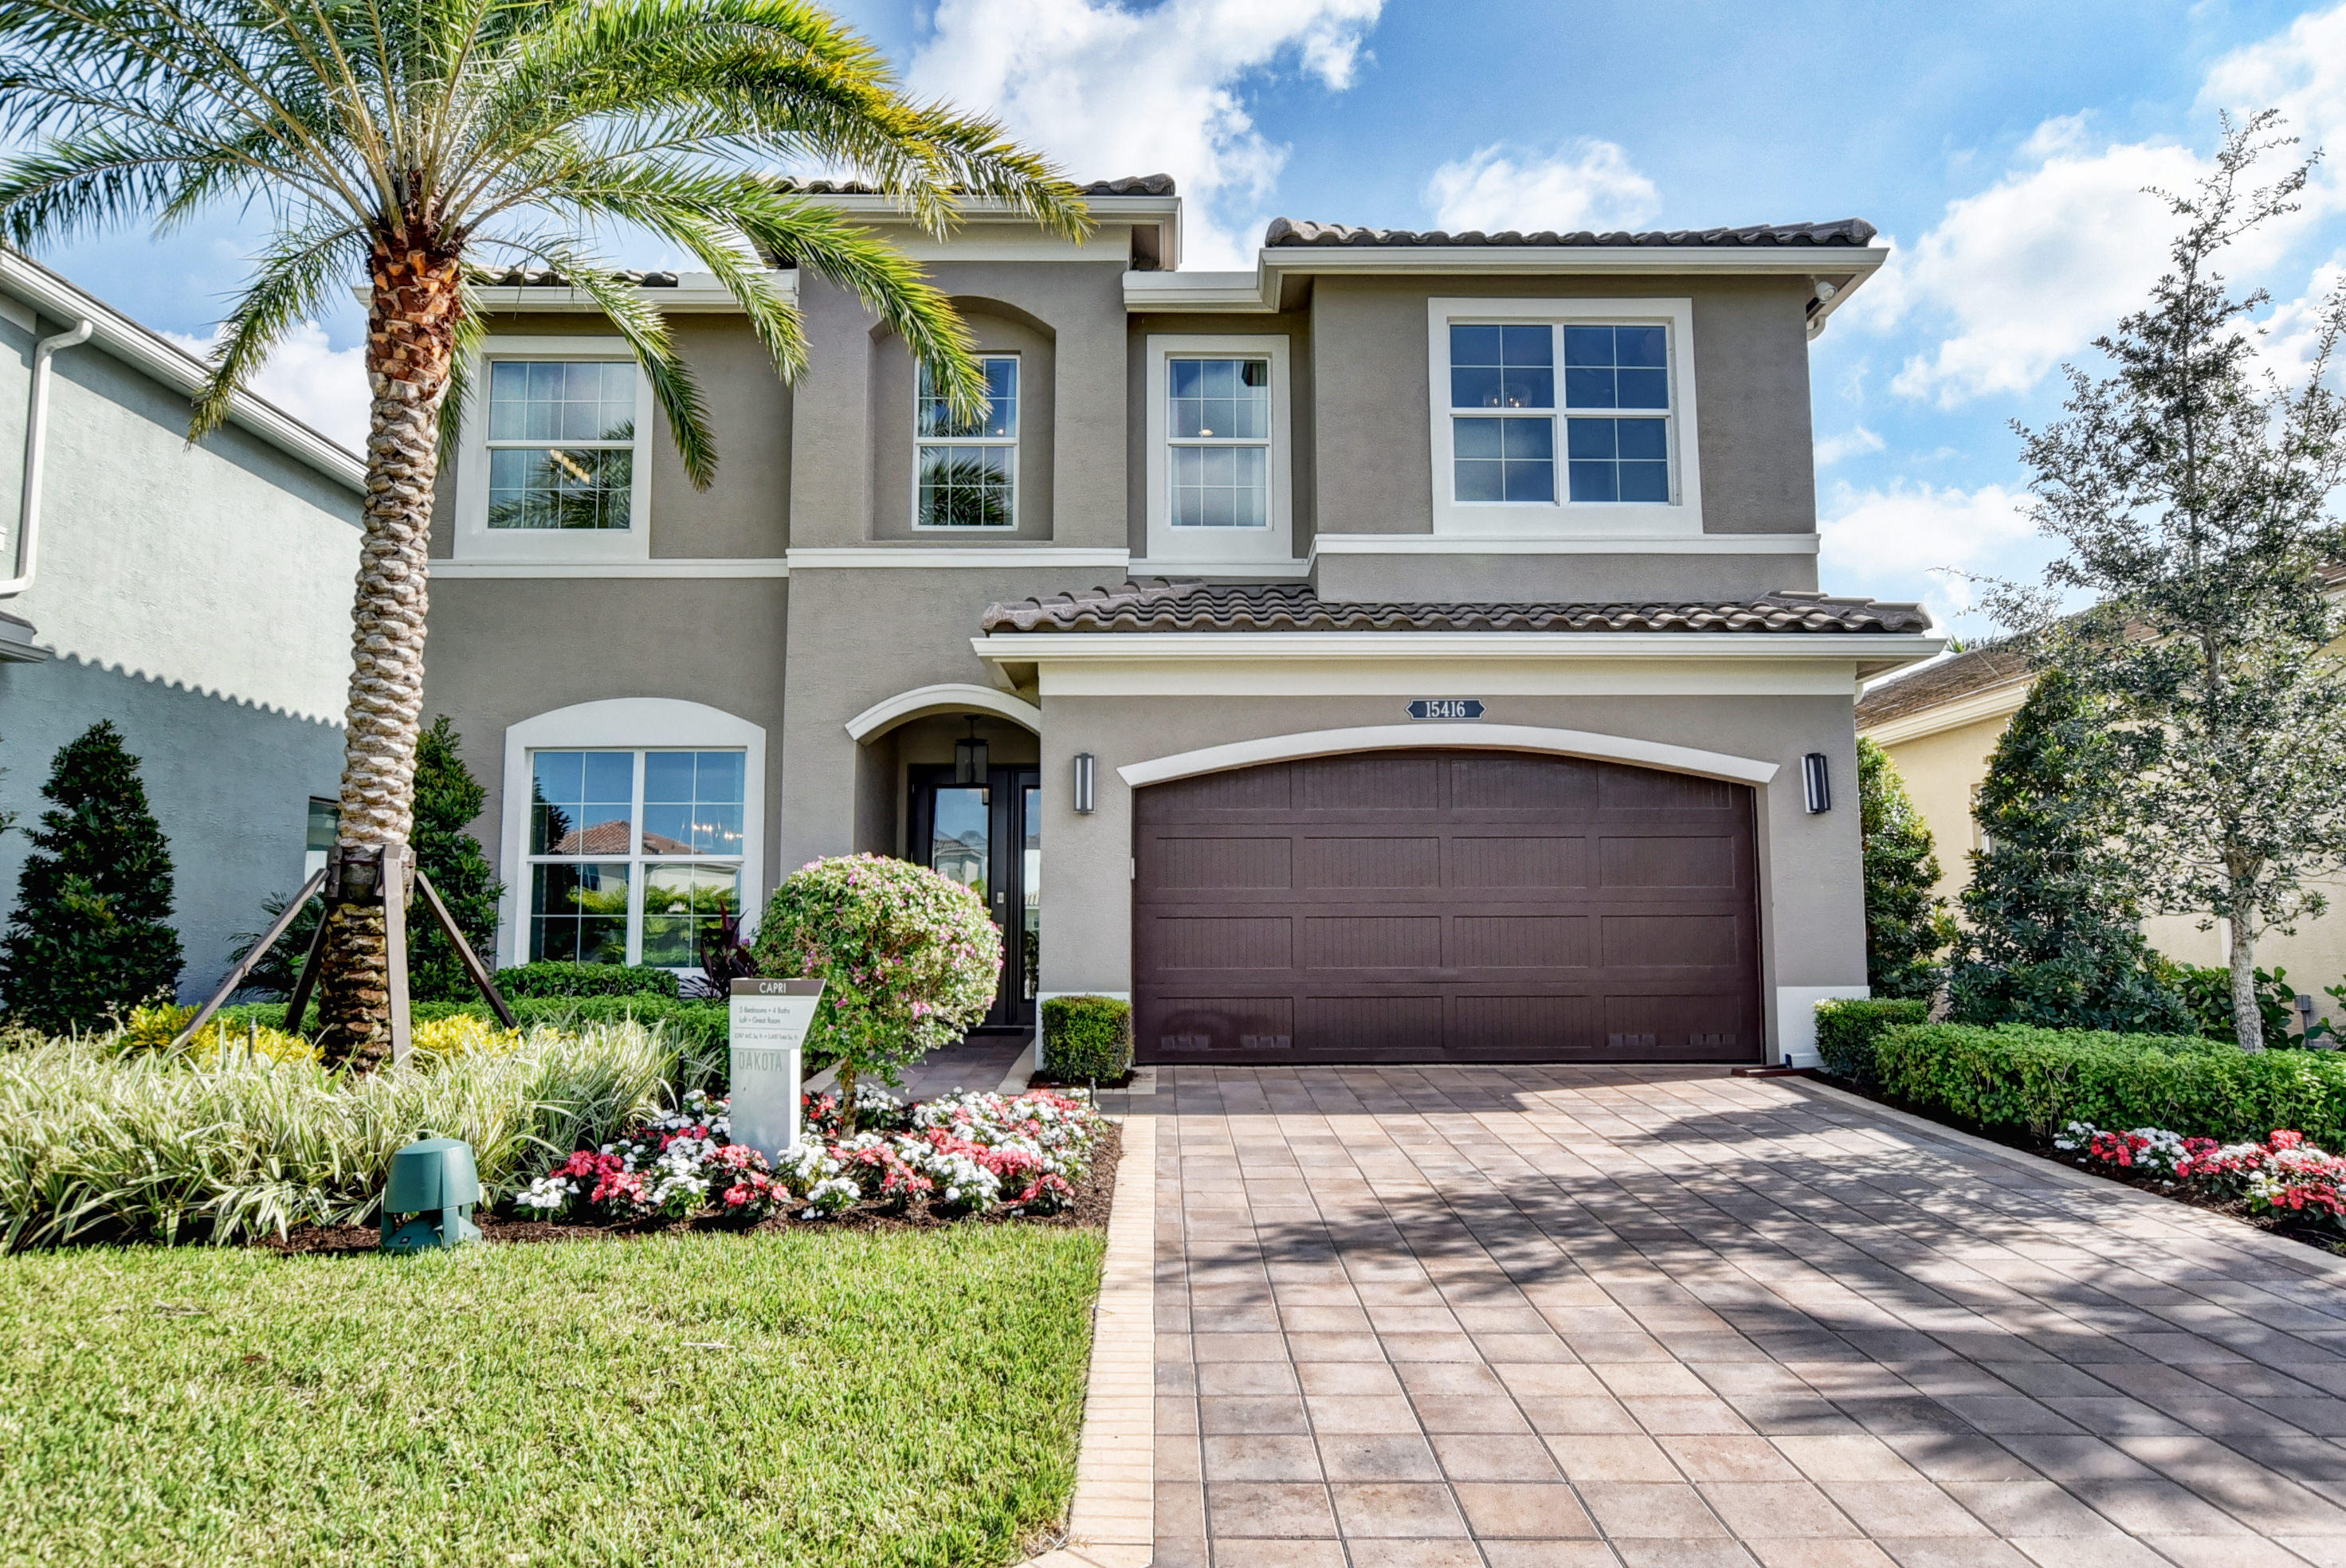 DAKOTA home 9618 Brook Isles Avenue Delray Beach FL 33446